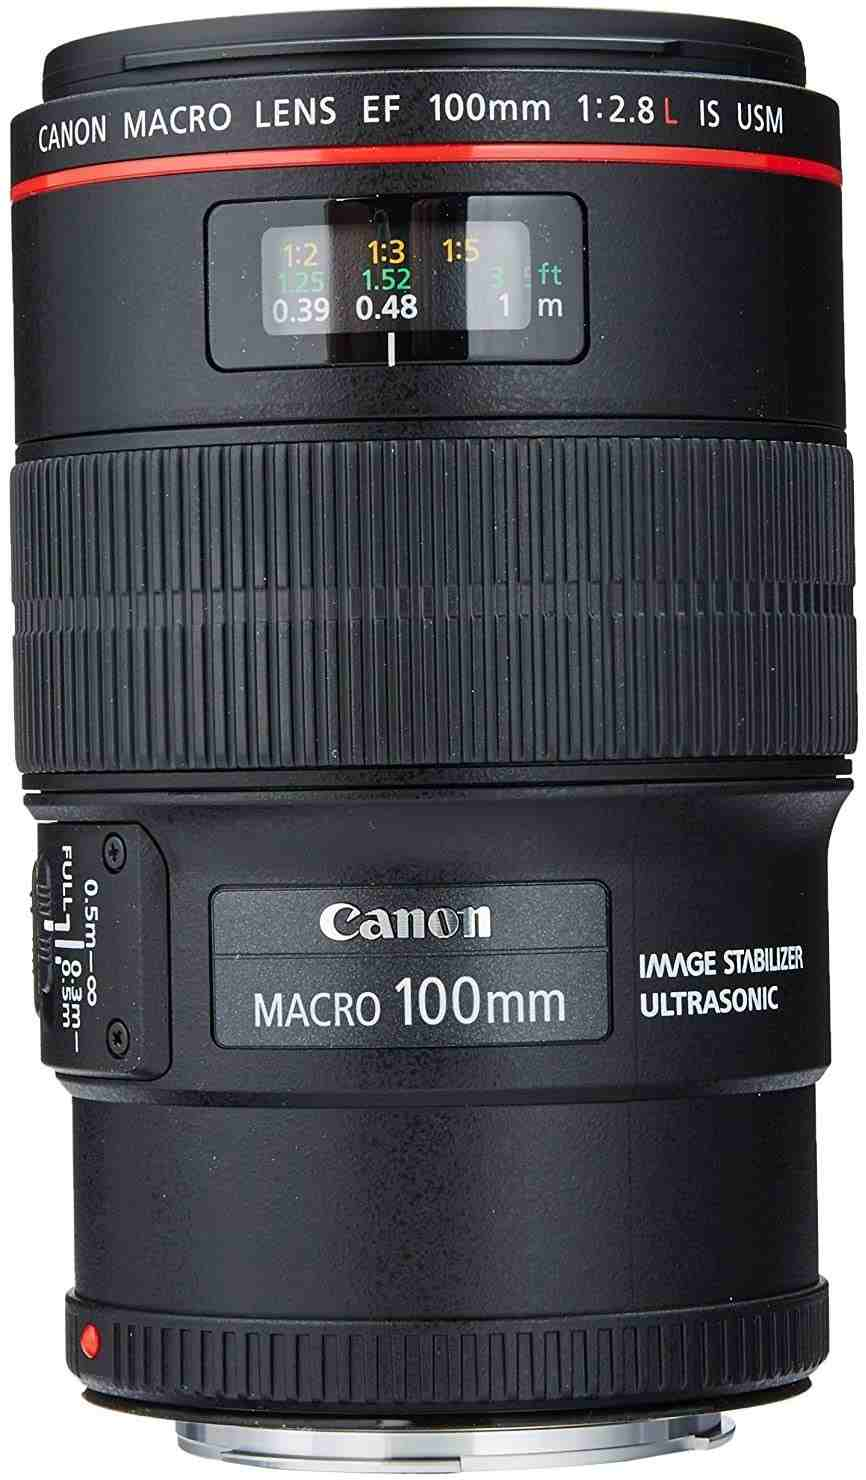 Canon - best lens for product photography